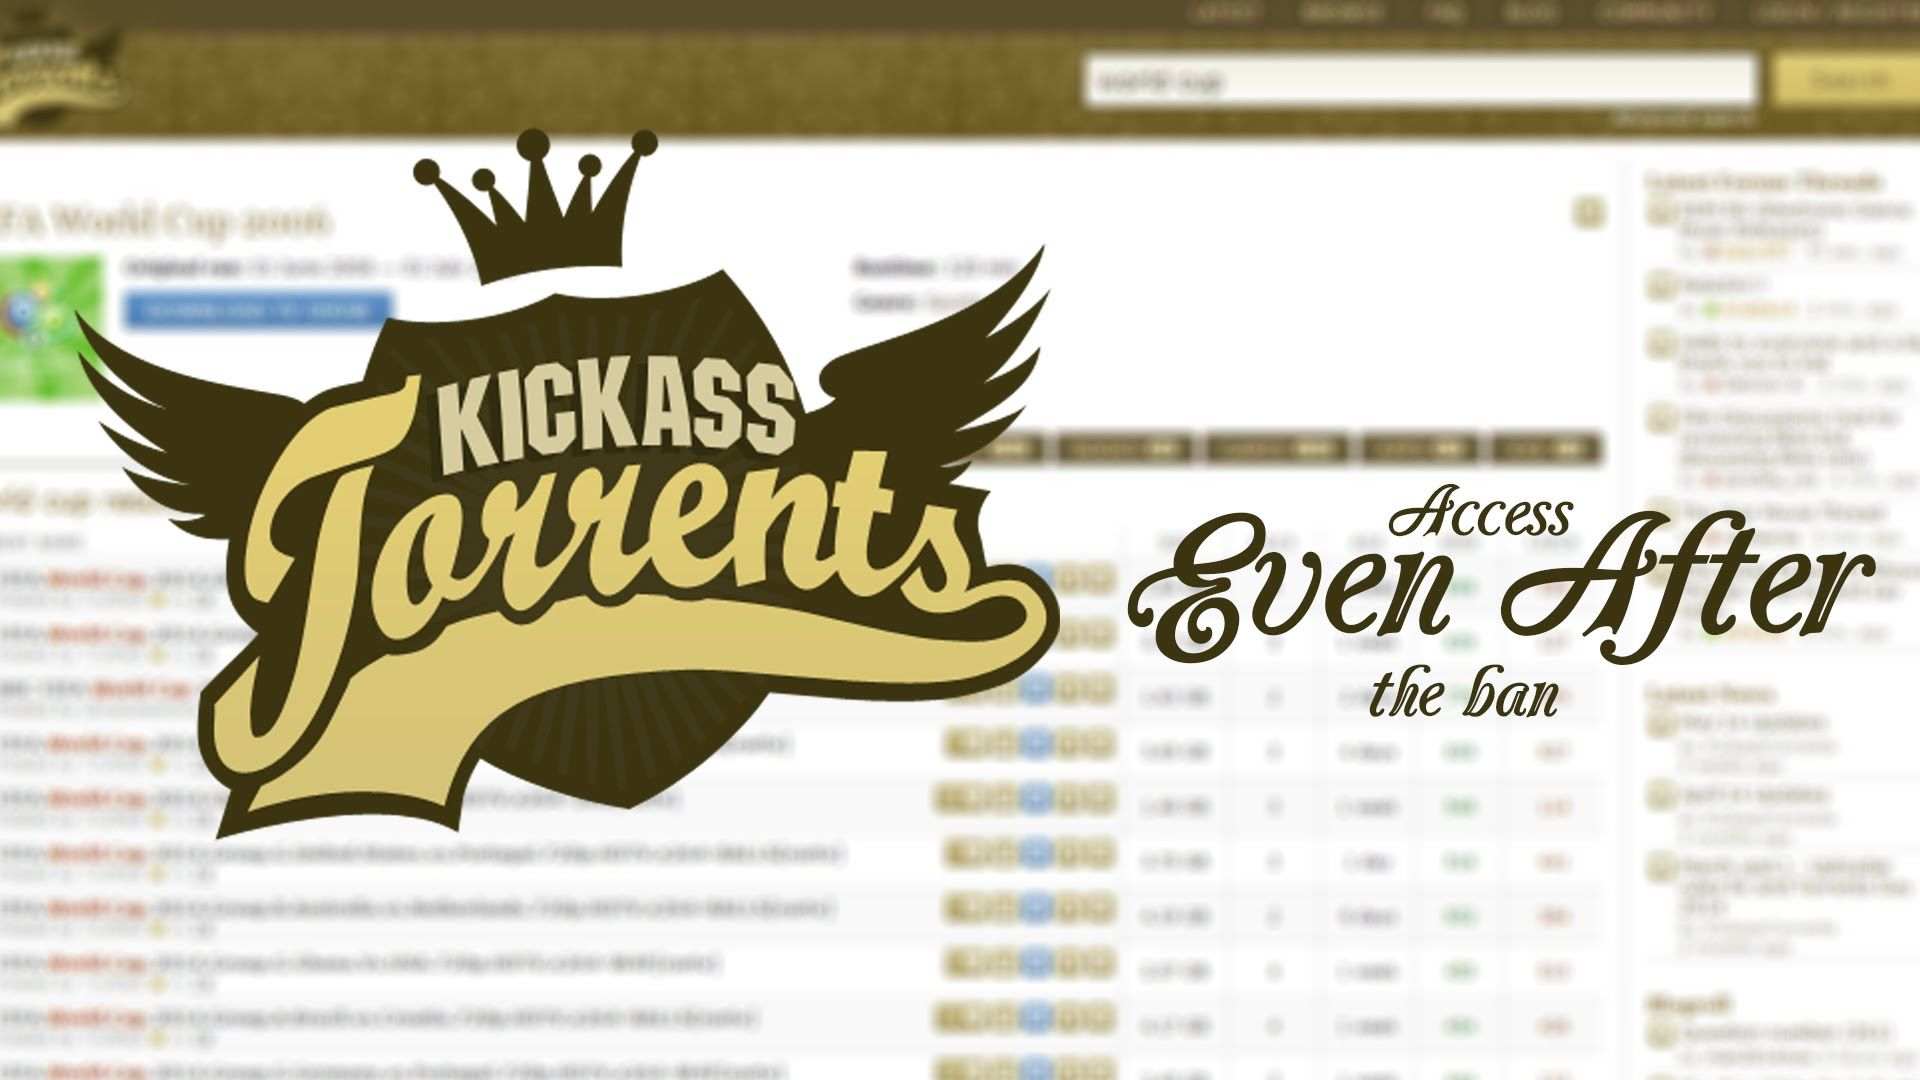 Kickass Proxy: 100% Working – Unblock Kickass Sites in 2020